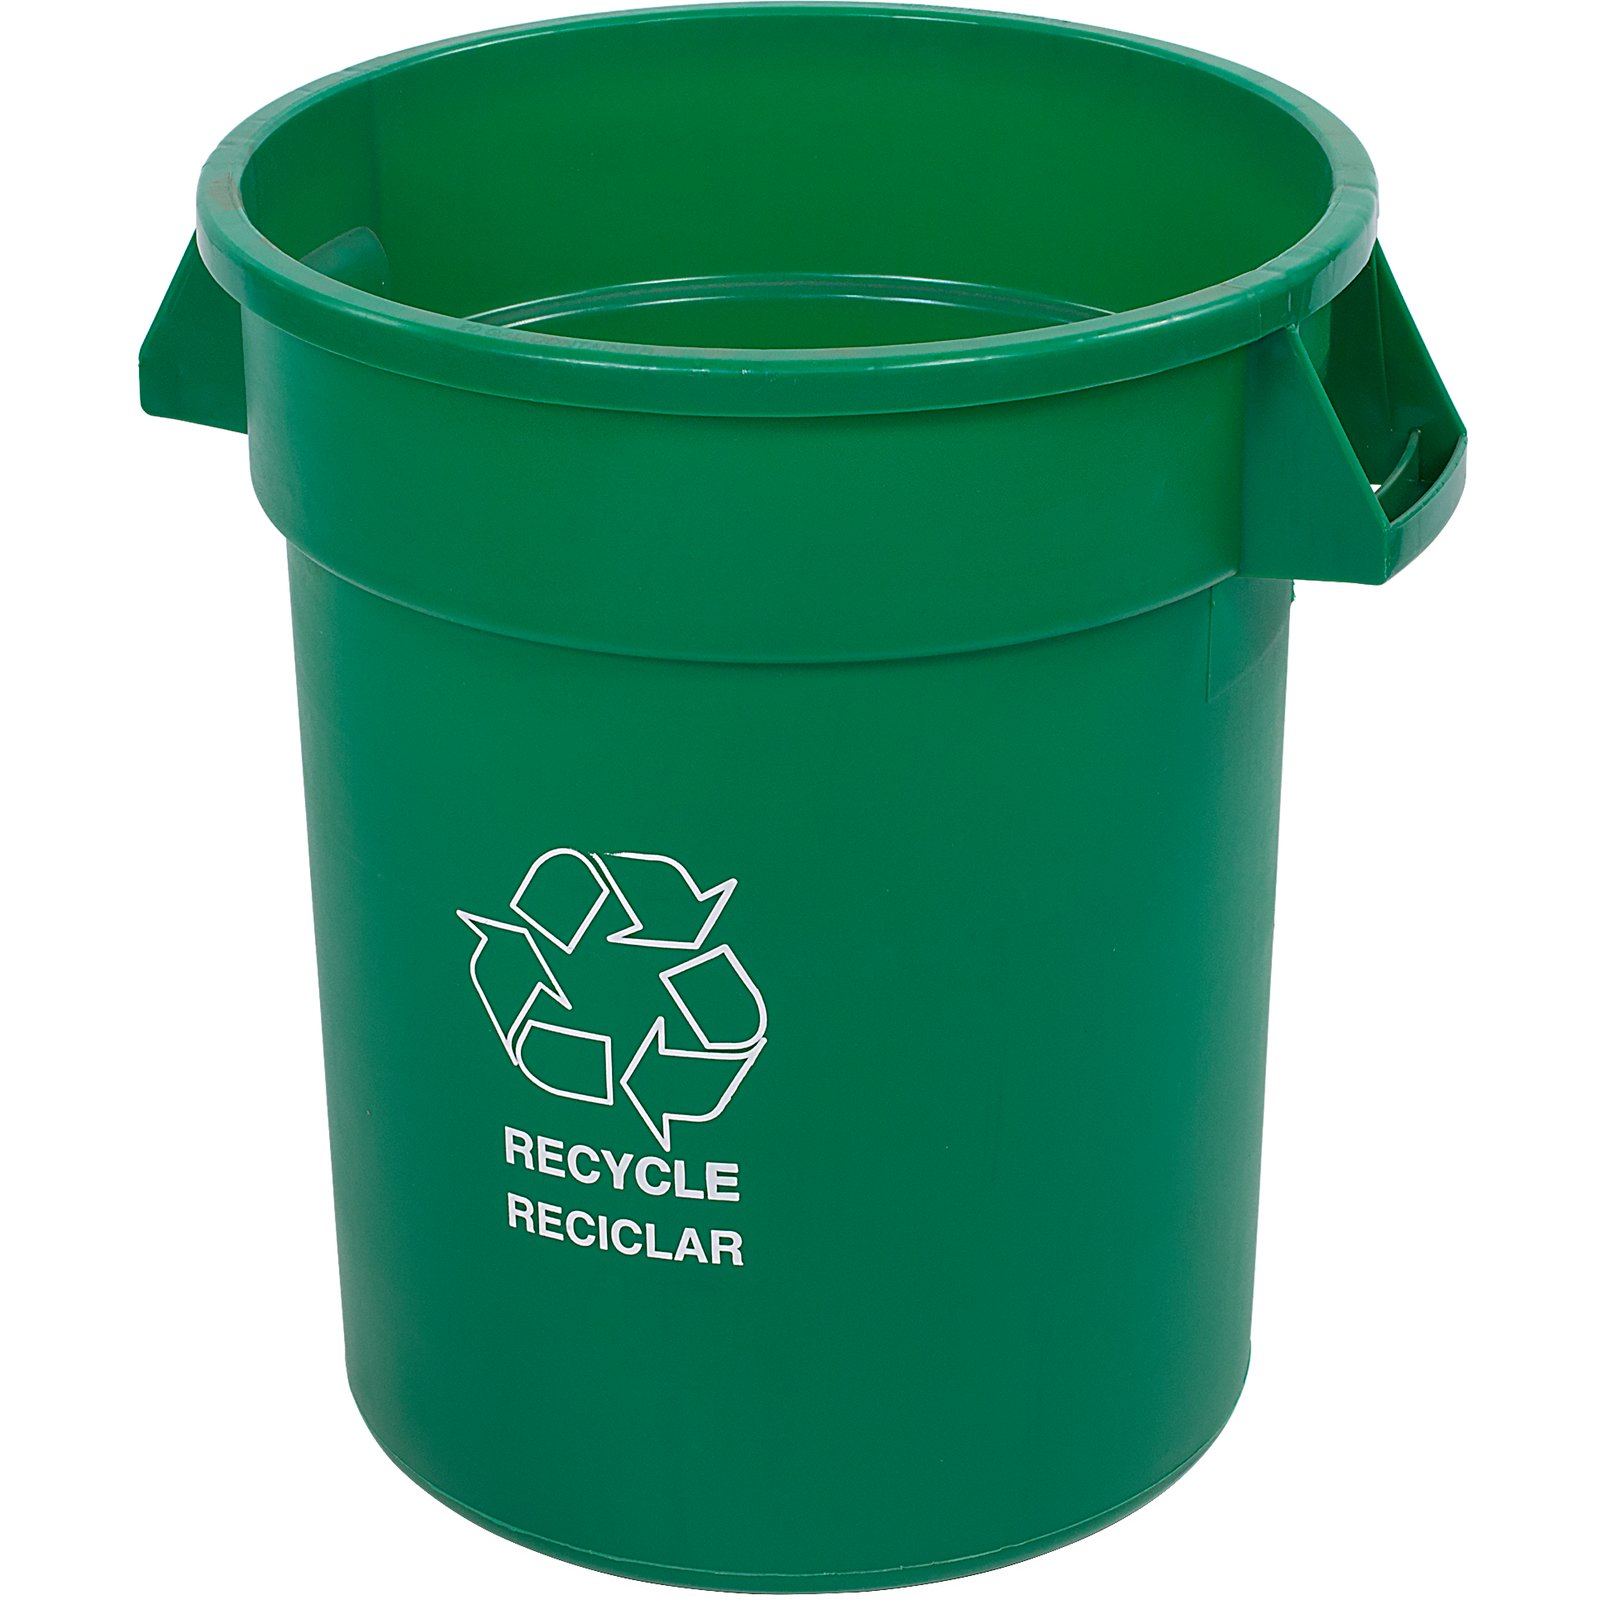 341020REC09 - Bronco™ Round RECYCLE Container 20 Gallon - Green ...